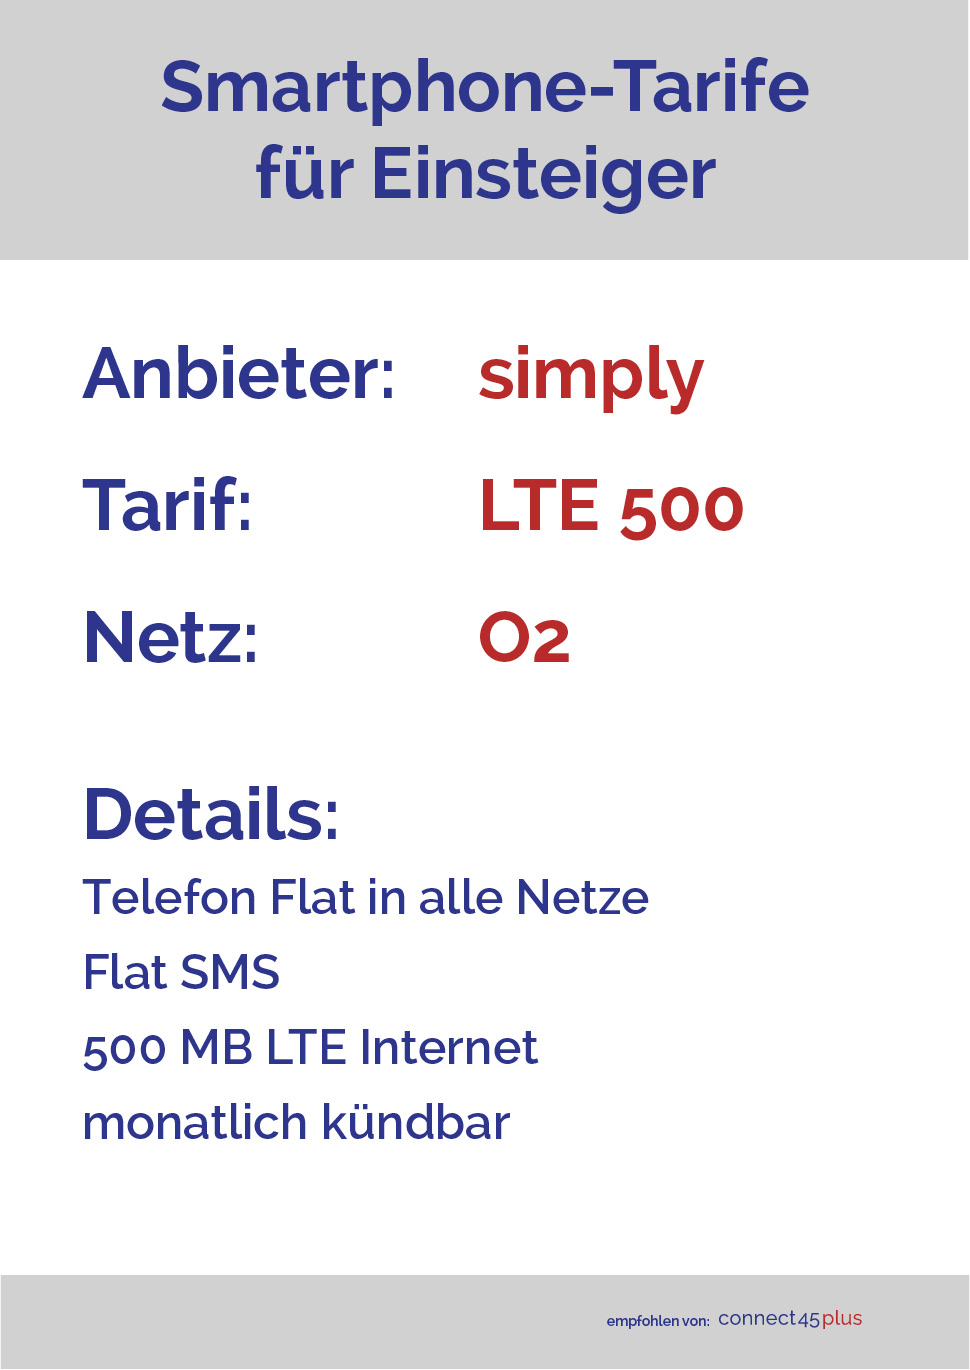 simply LTE500